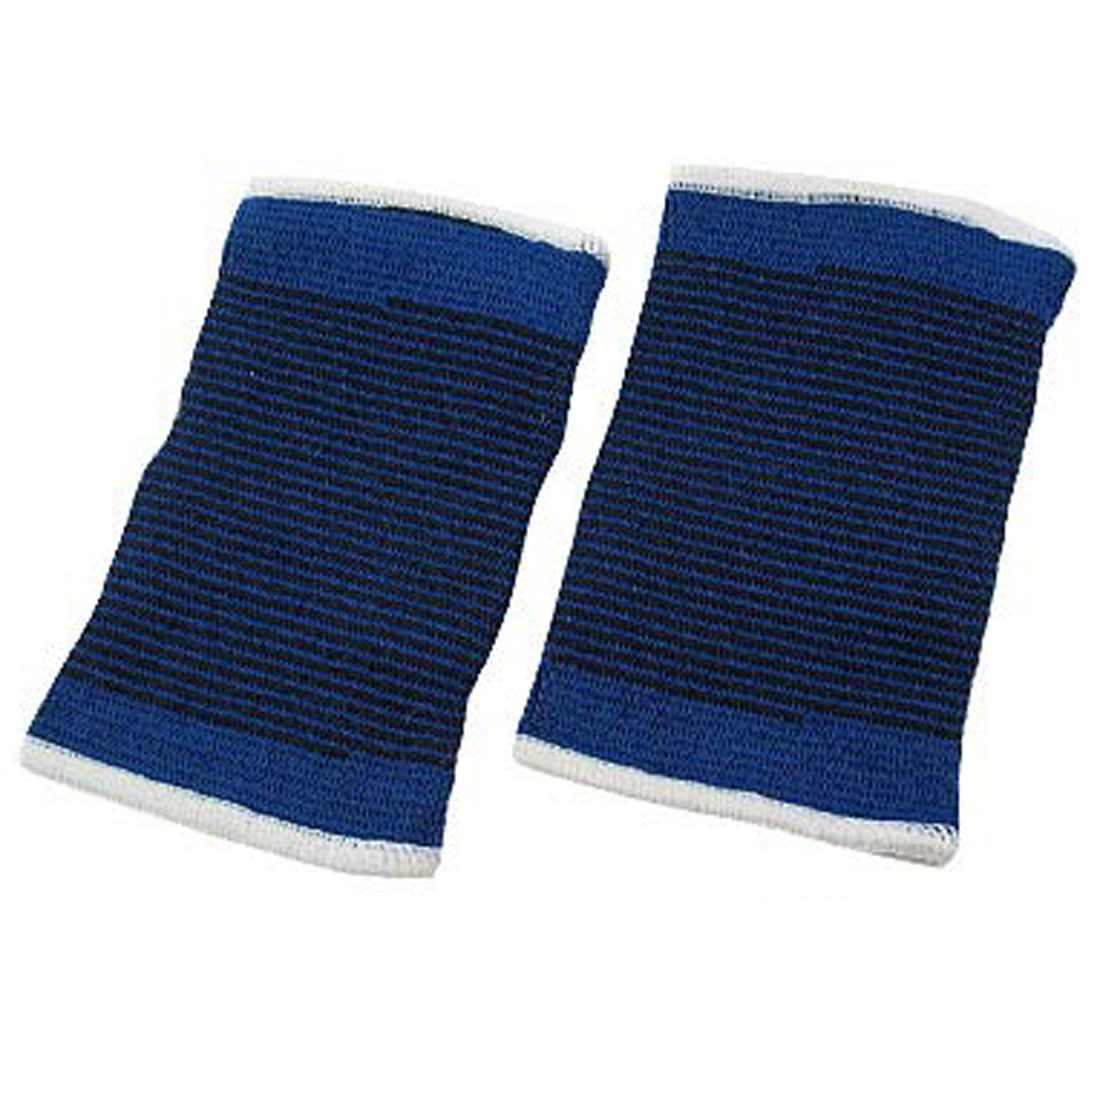 Pair Elbow Support Brace Pad Wrap Band for Sports